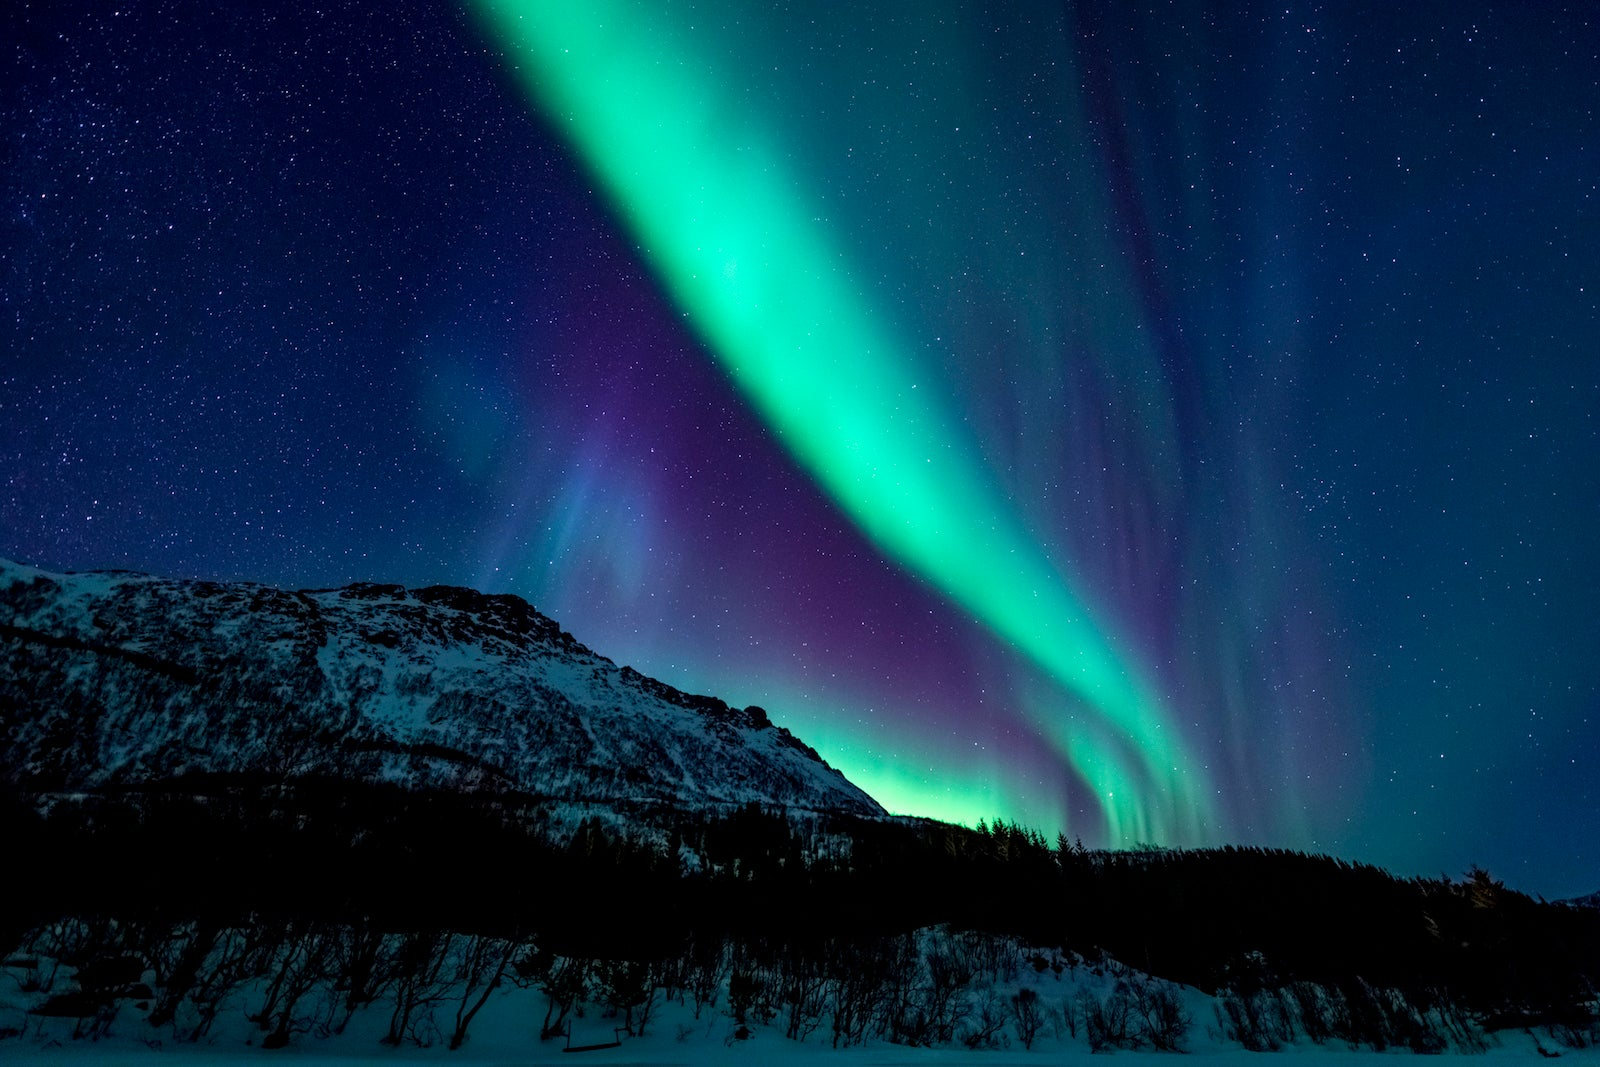 It's official: Northern lights season is back - The Points Guy